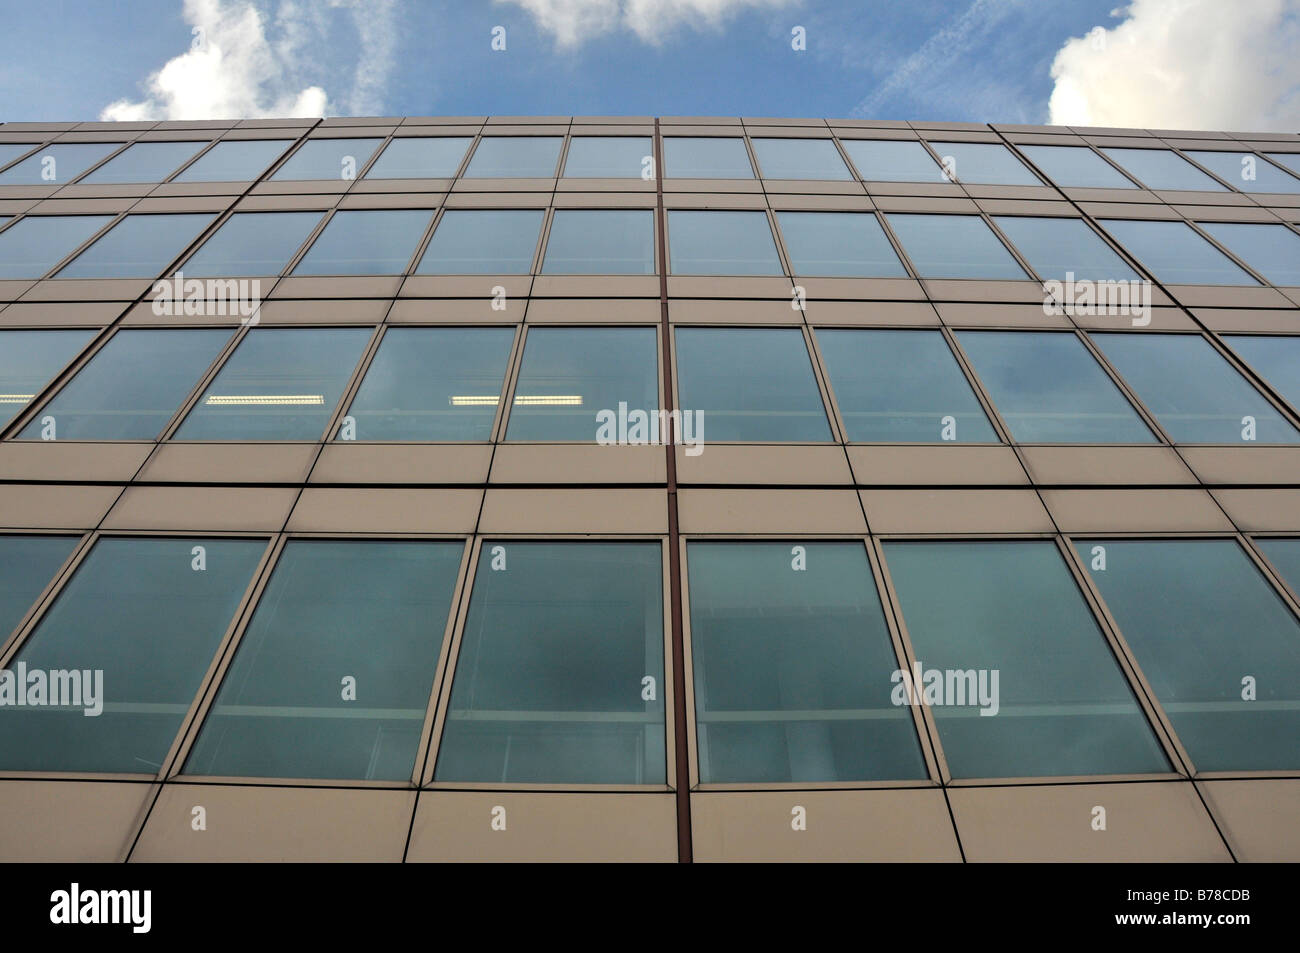 Building with glass panels - Stock Image